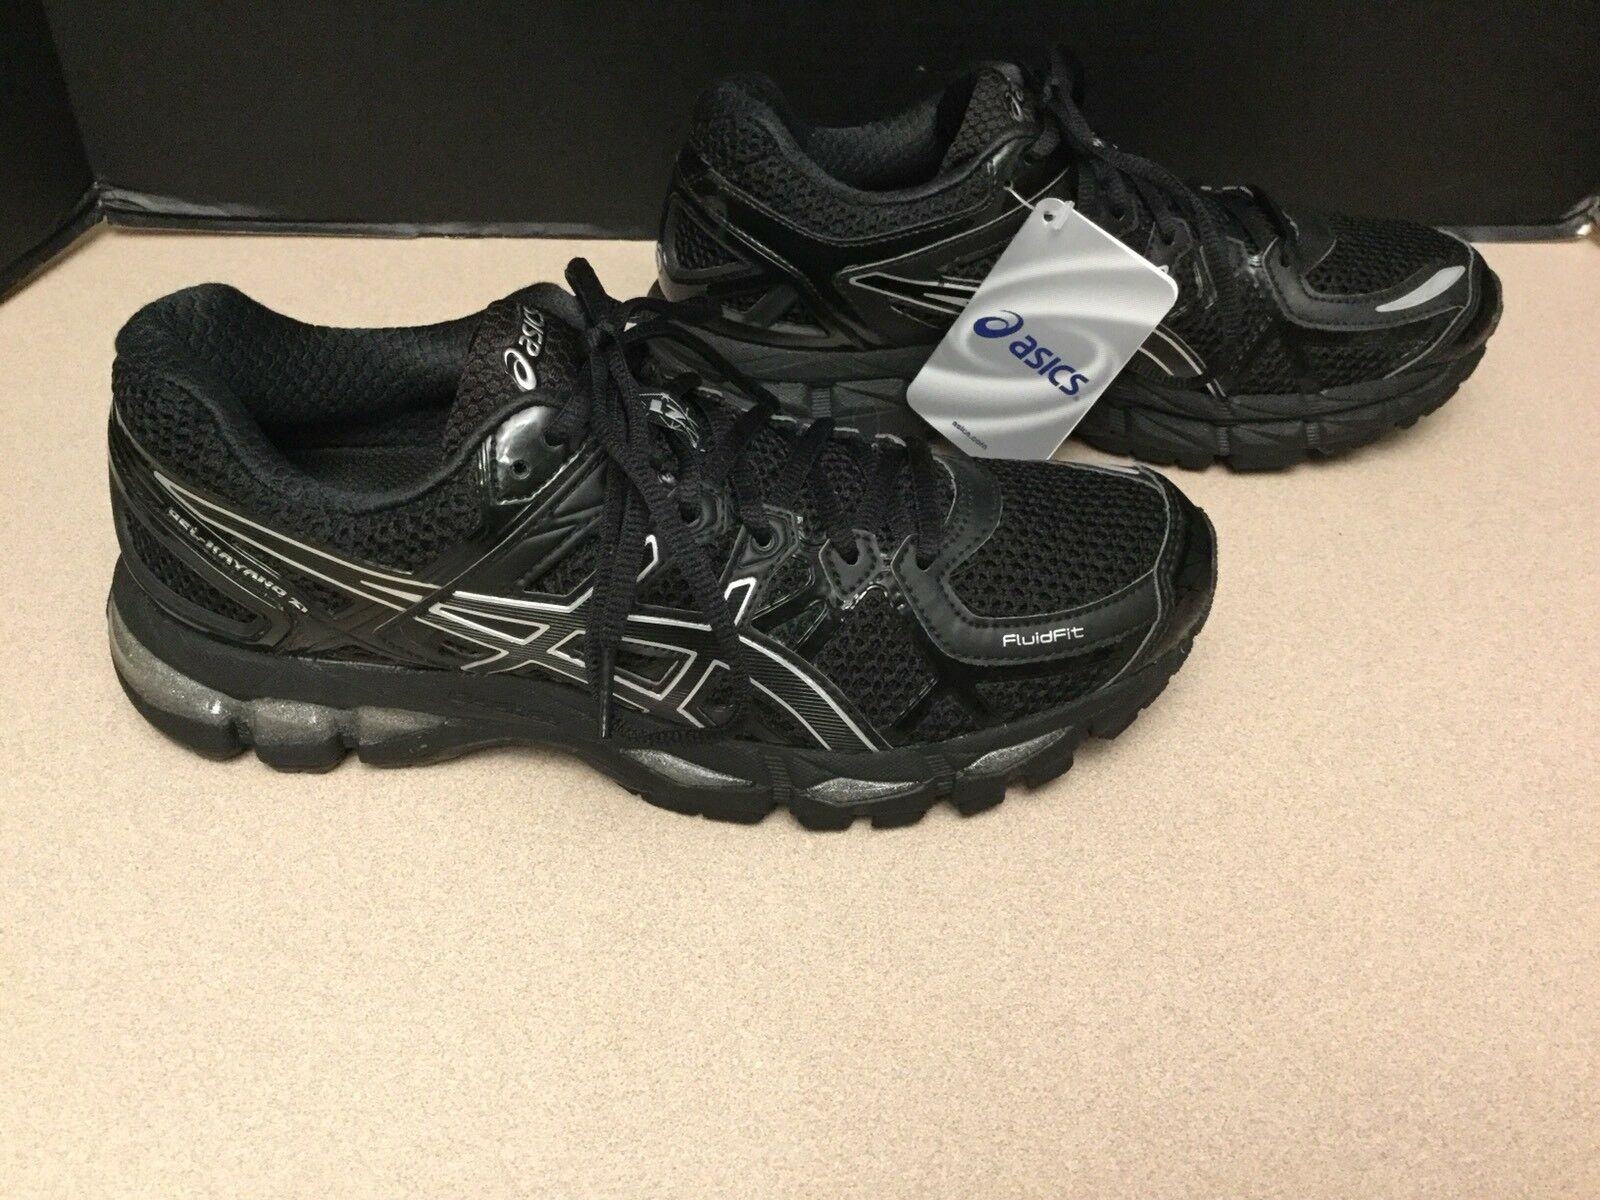 NEW WOMENS ASICS GEL-KAYANO 21 BLACK RUNNING SHOES. SIZE 9.5. NICE SHOES